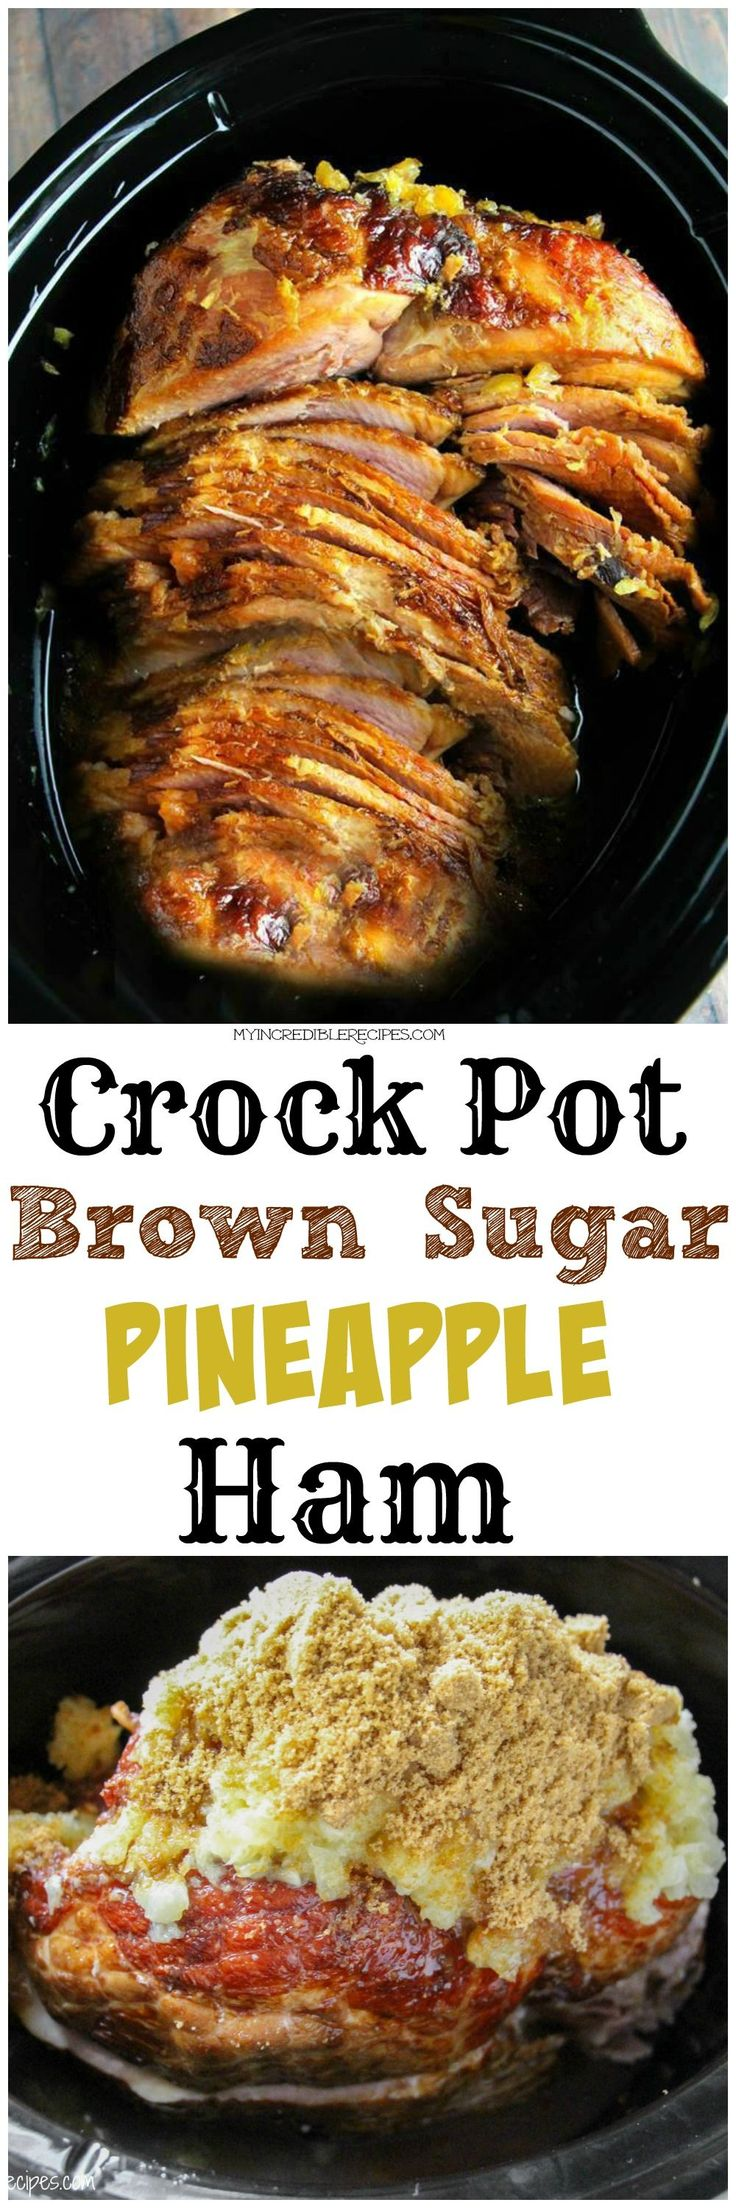 Crock Pot Brown Sugar Pineapple Ham!